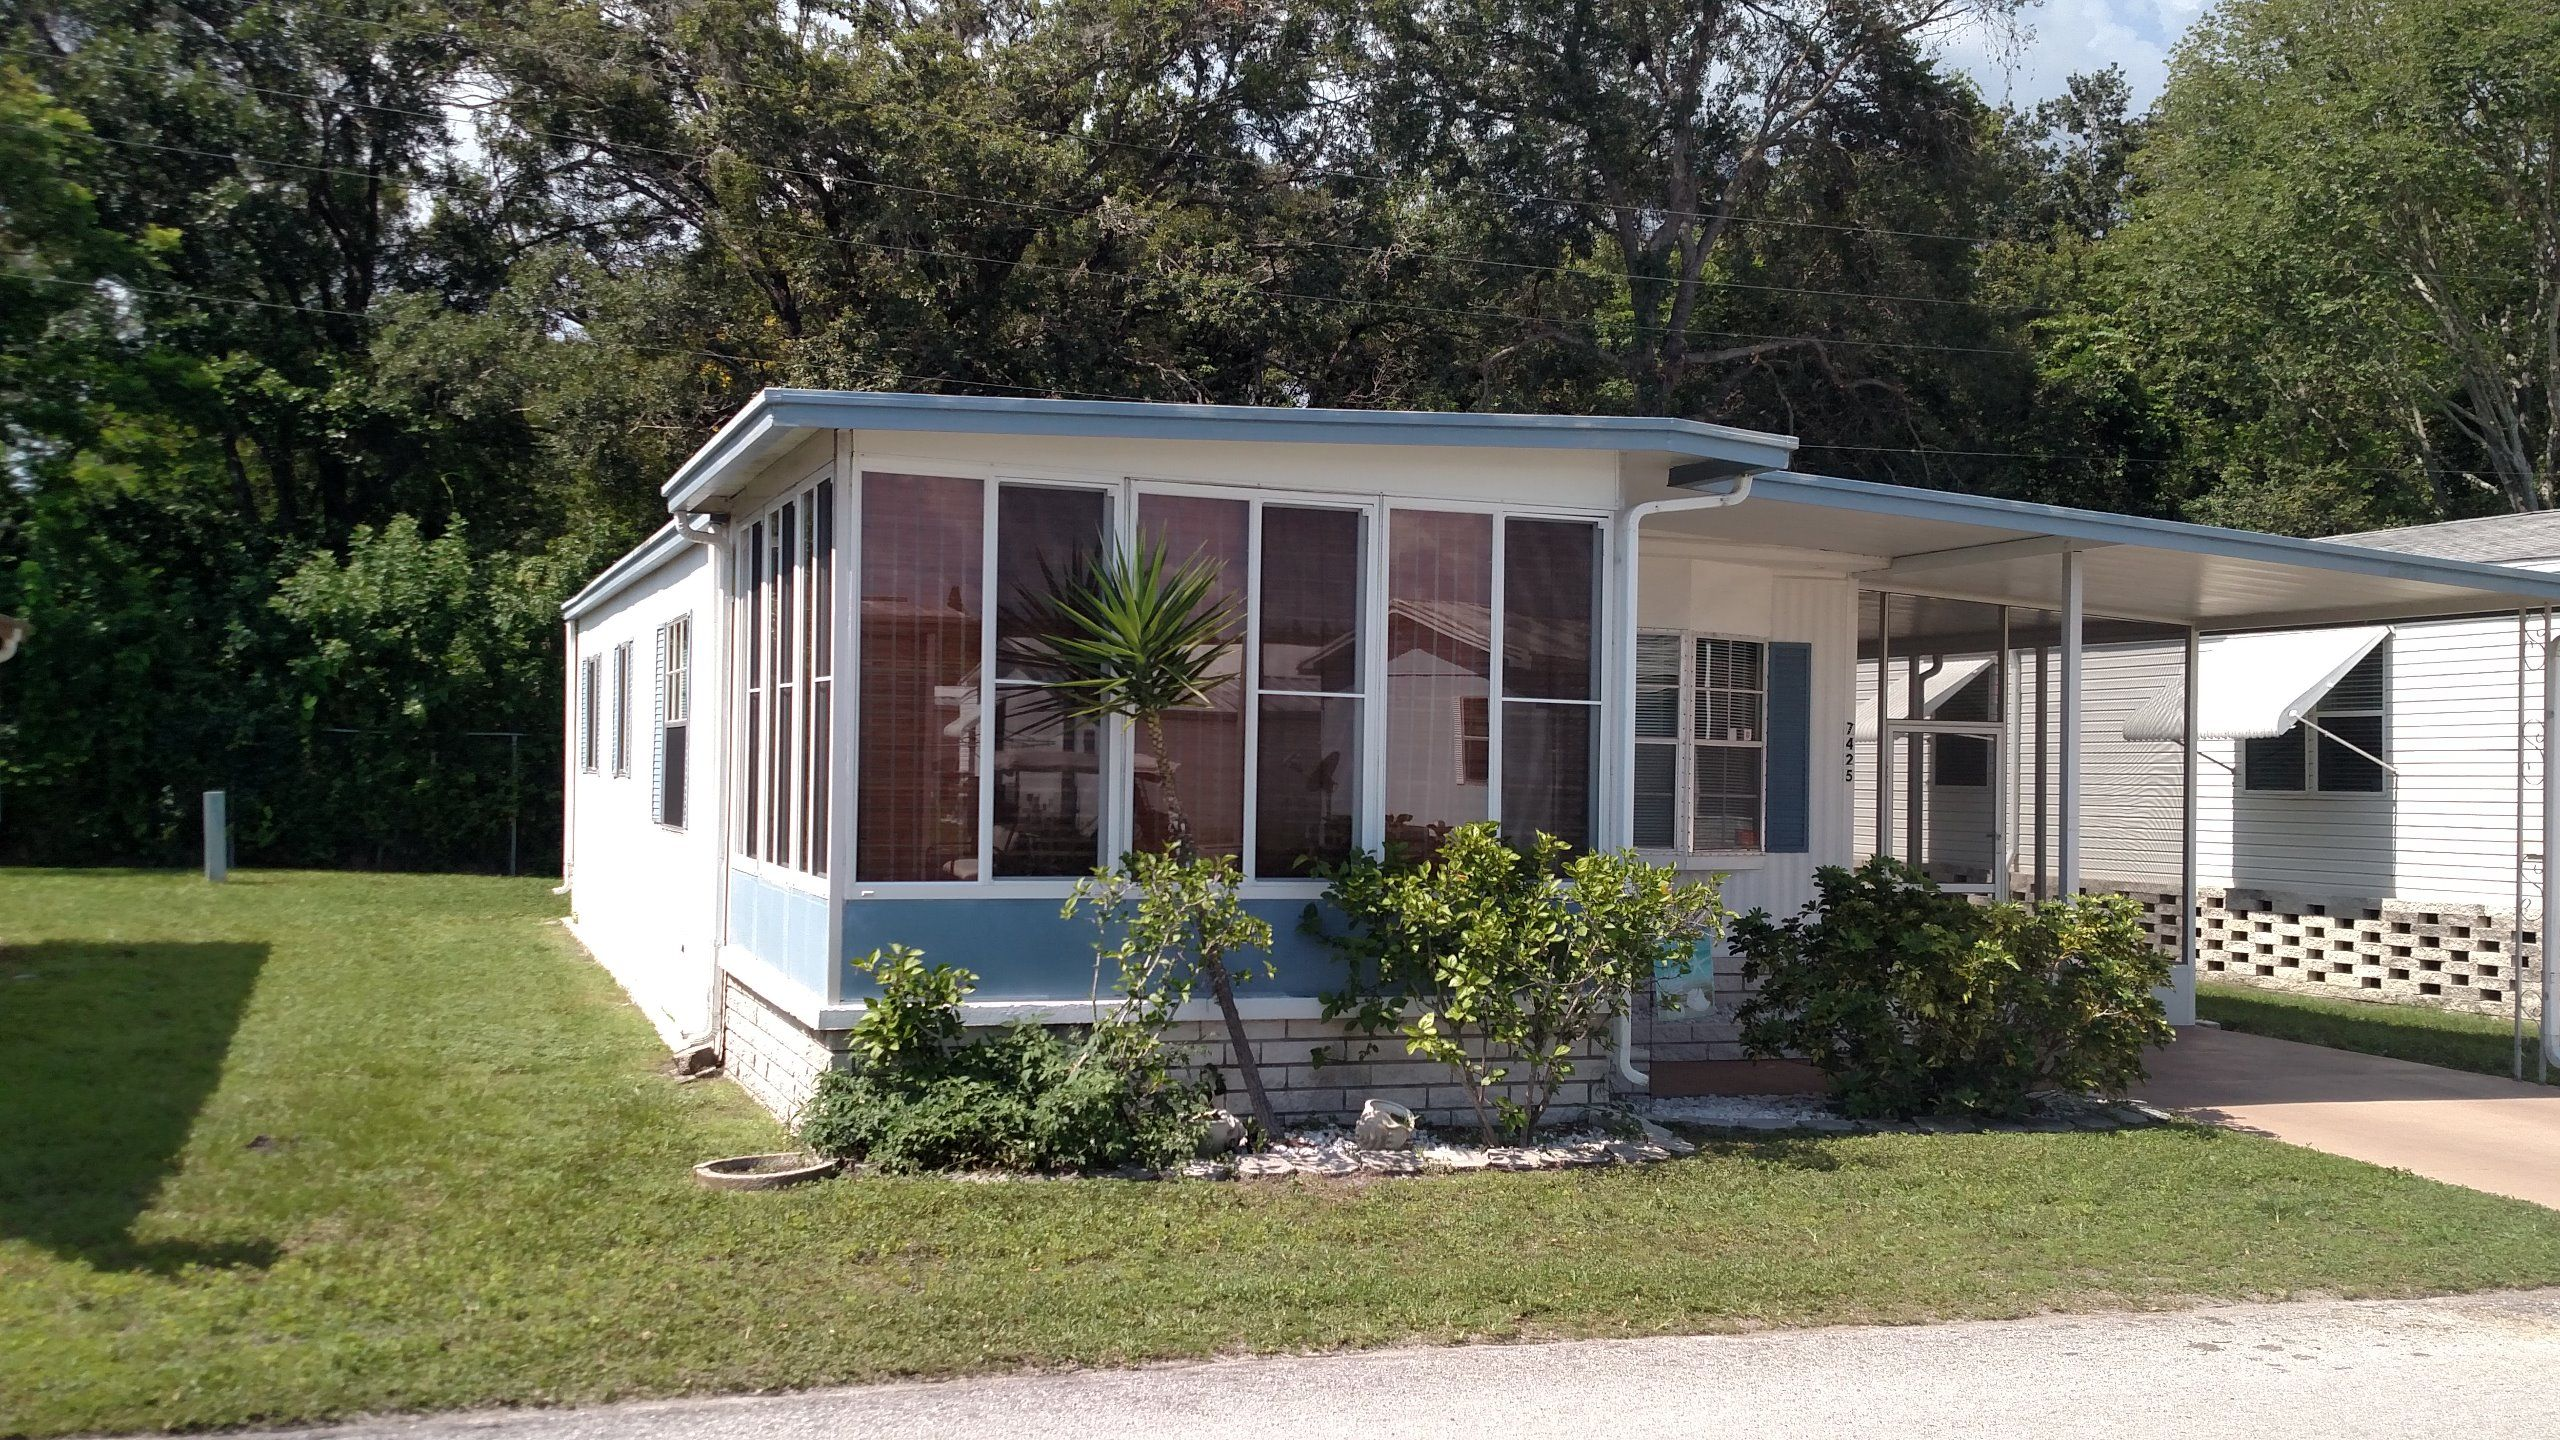 1979 twin mobile manufactured home in new port richey